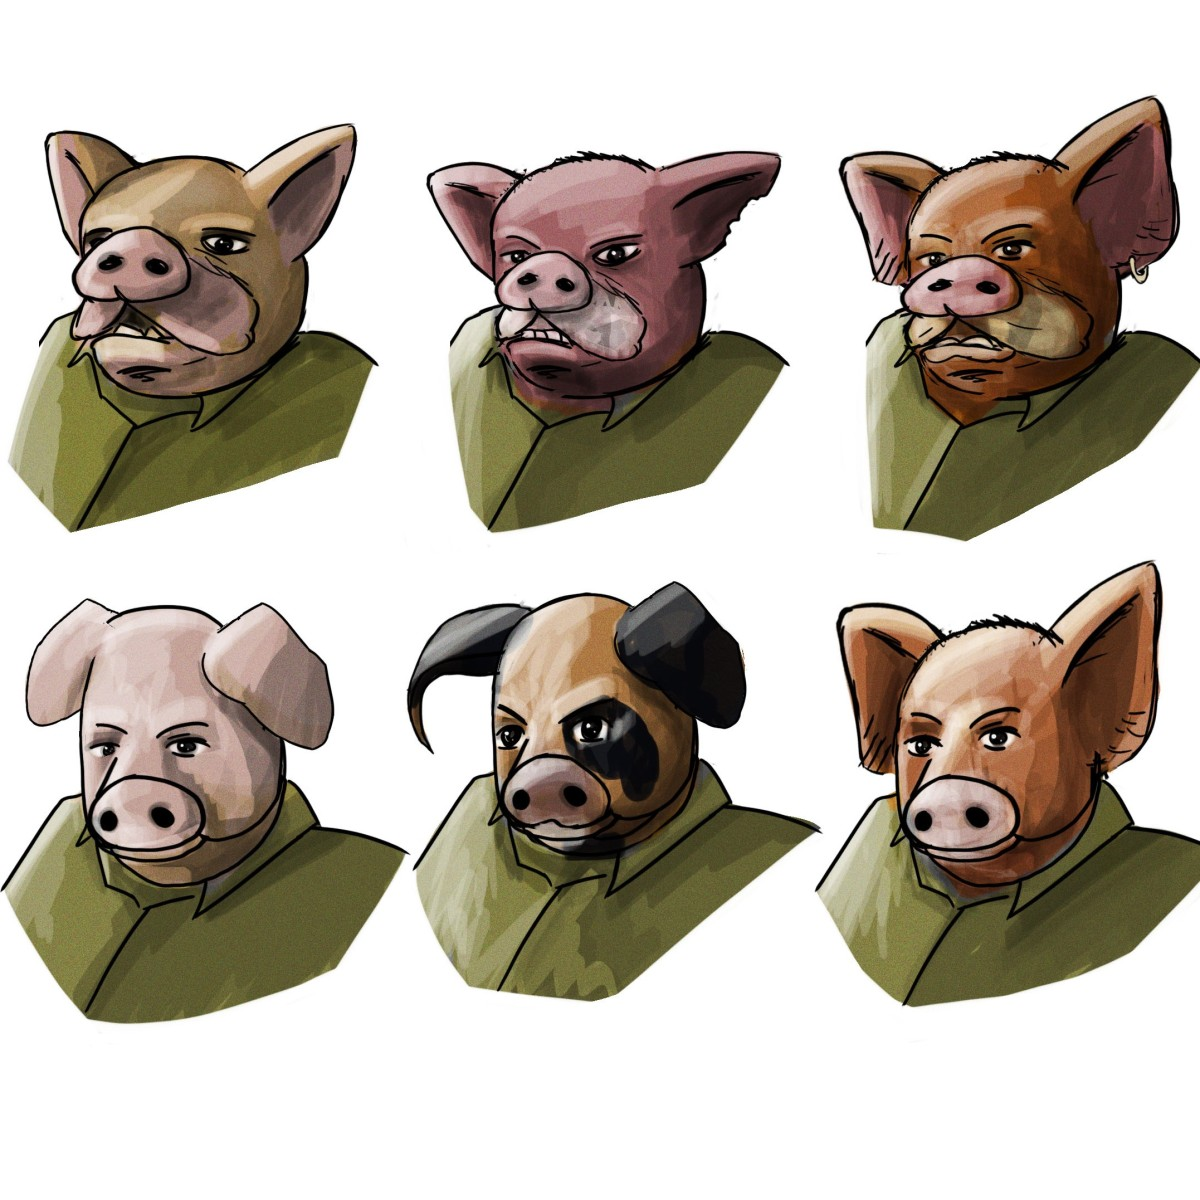 Hogs of War (2000) Reboot: Characters and Team Design